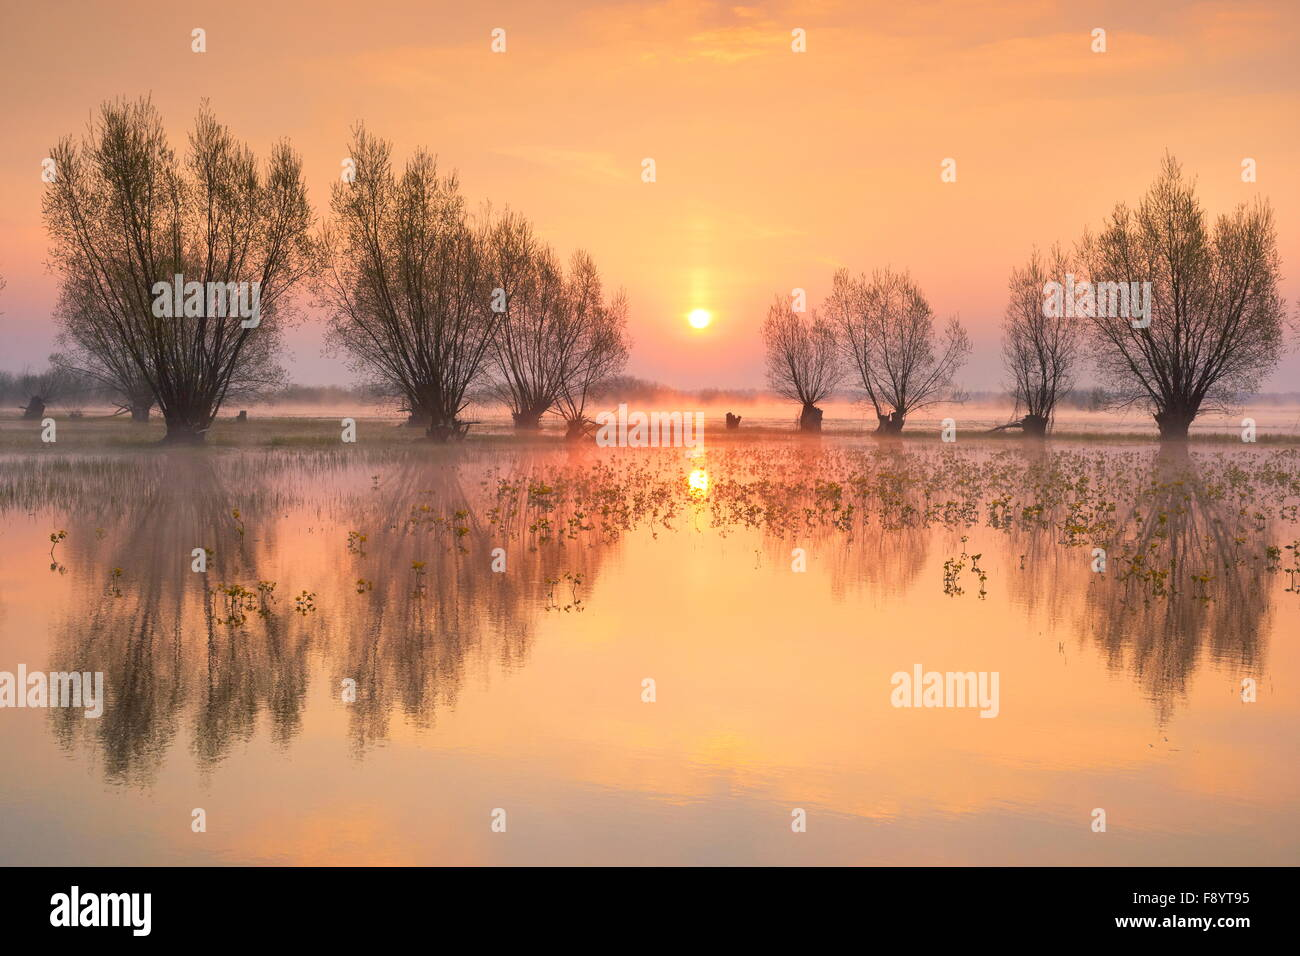 Sunrise landscapes at Biebrza National Park, Poland - Stock Image